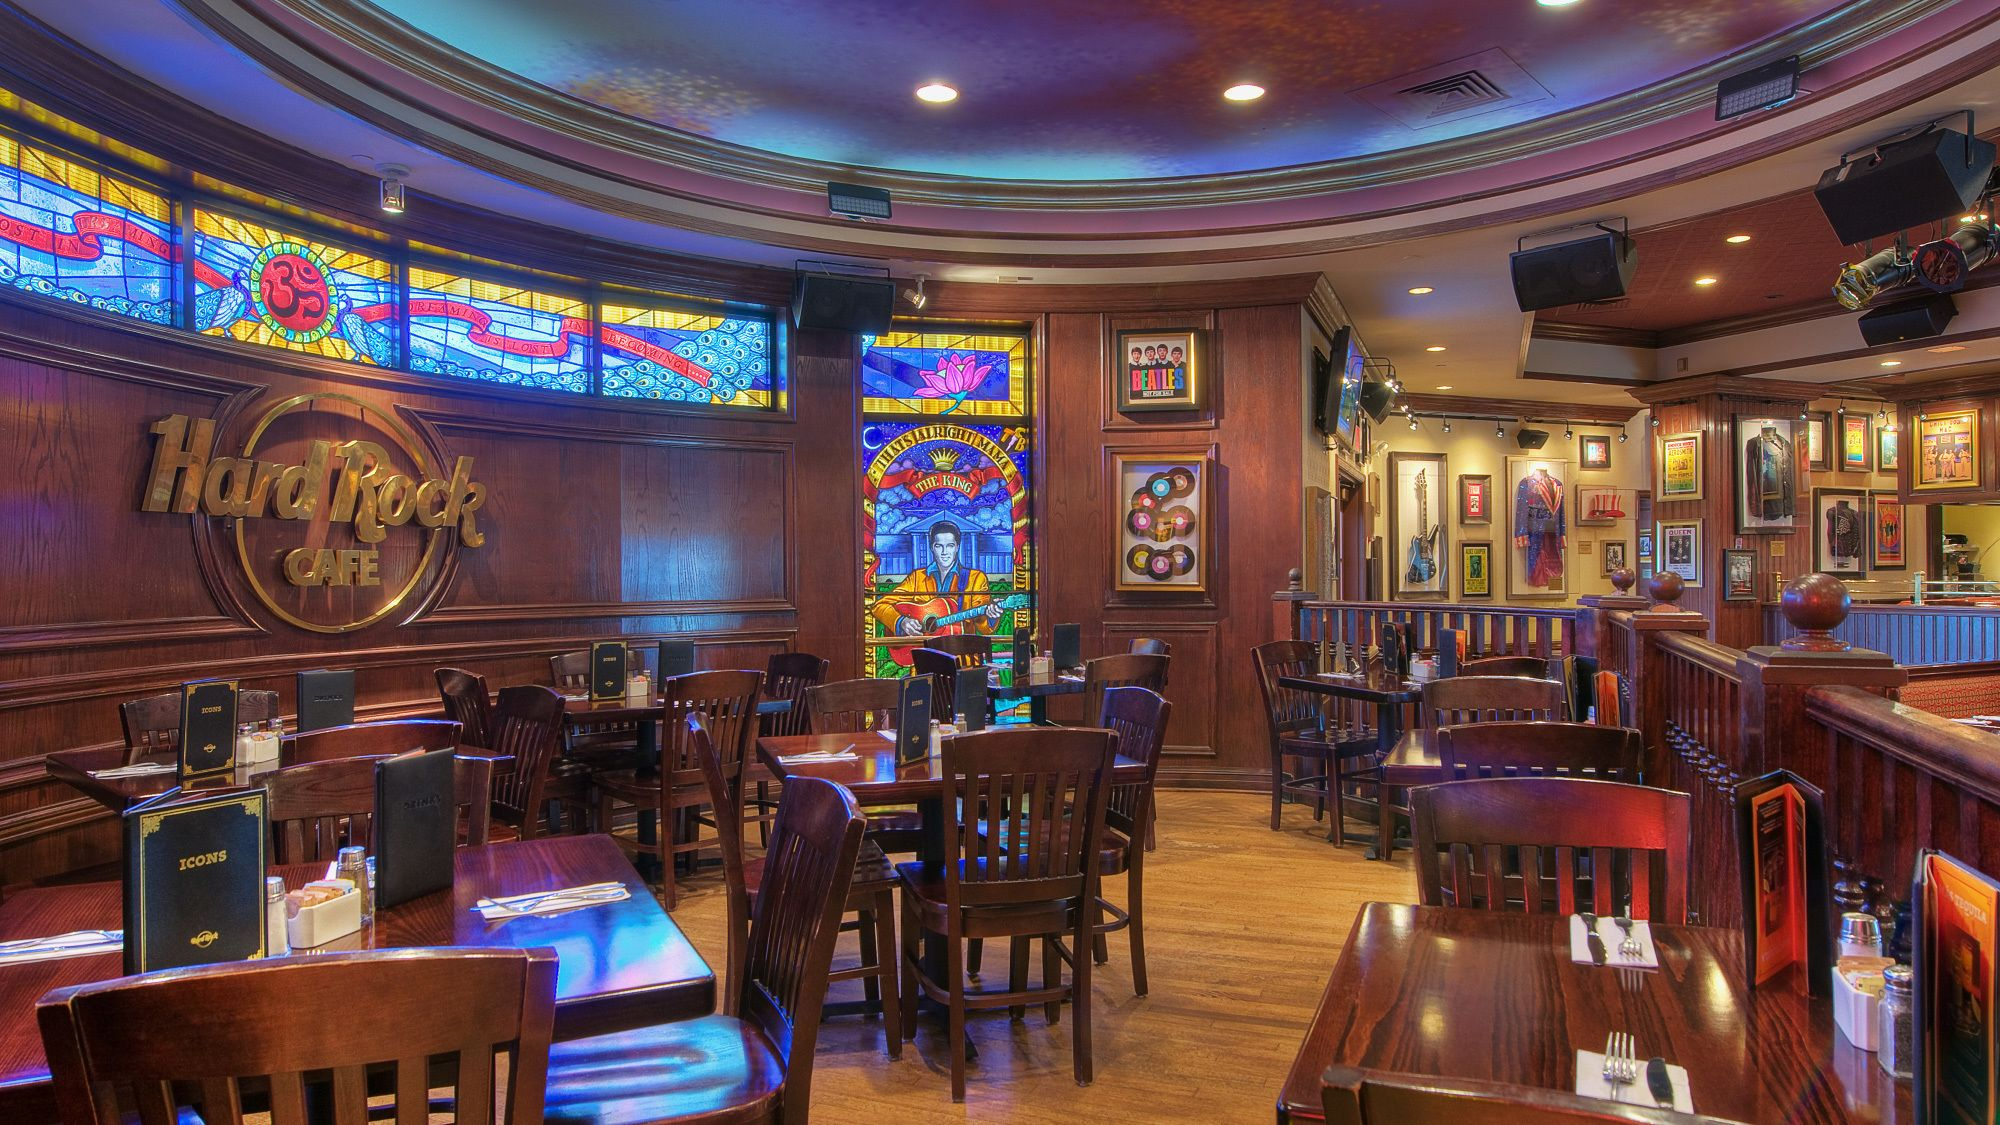 Interior view of the Hard Rock Cafe in St. Louis